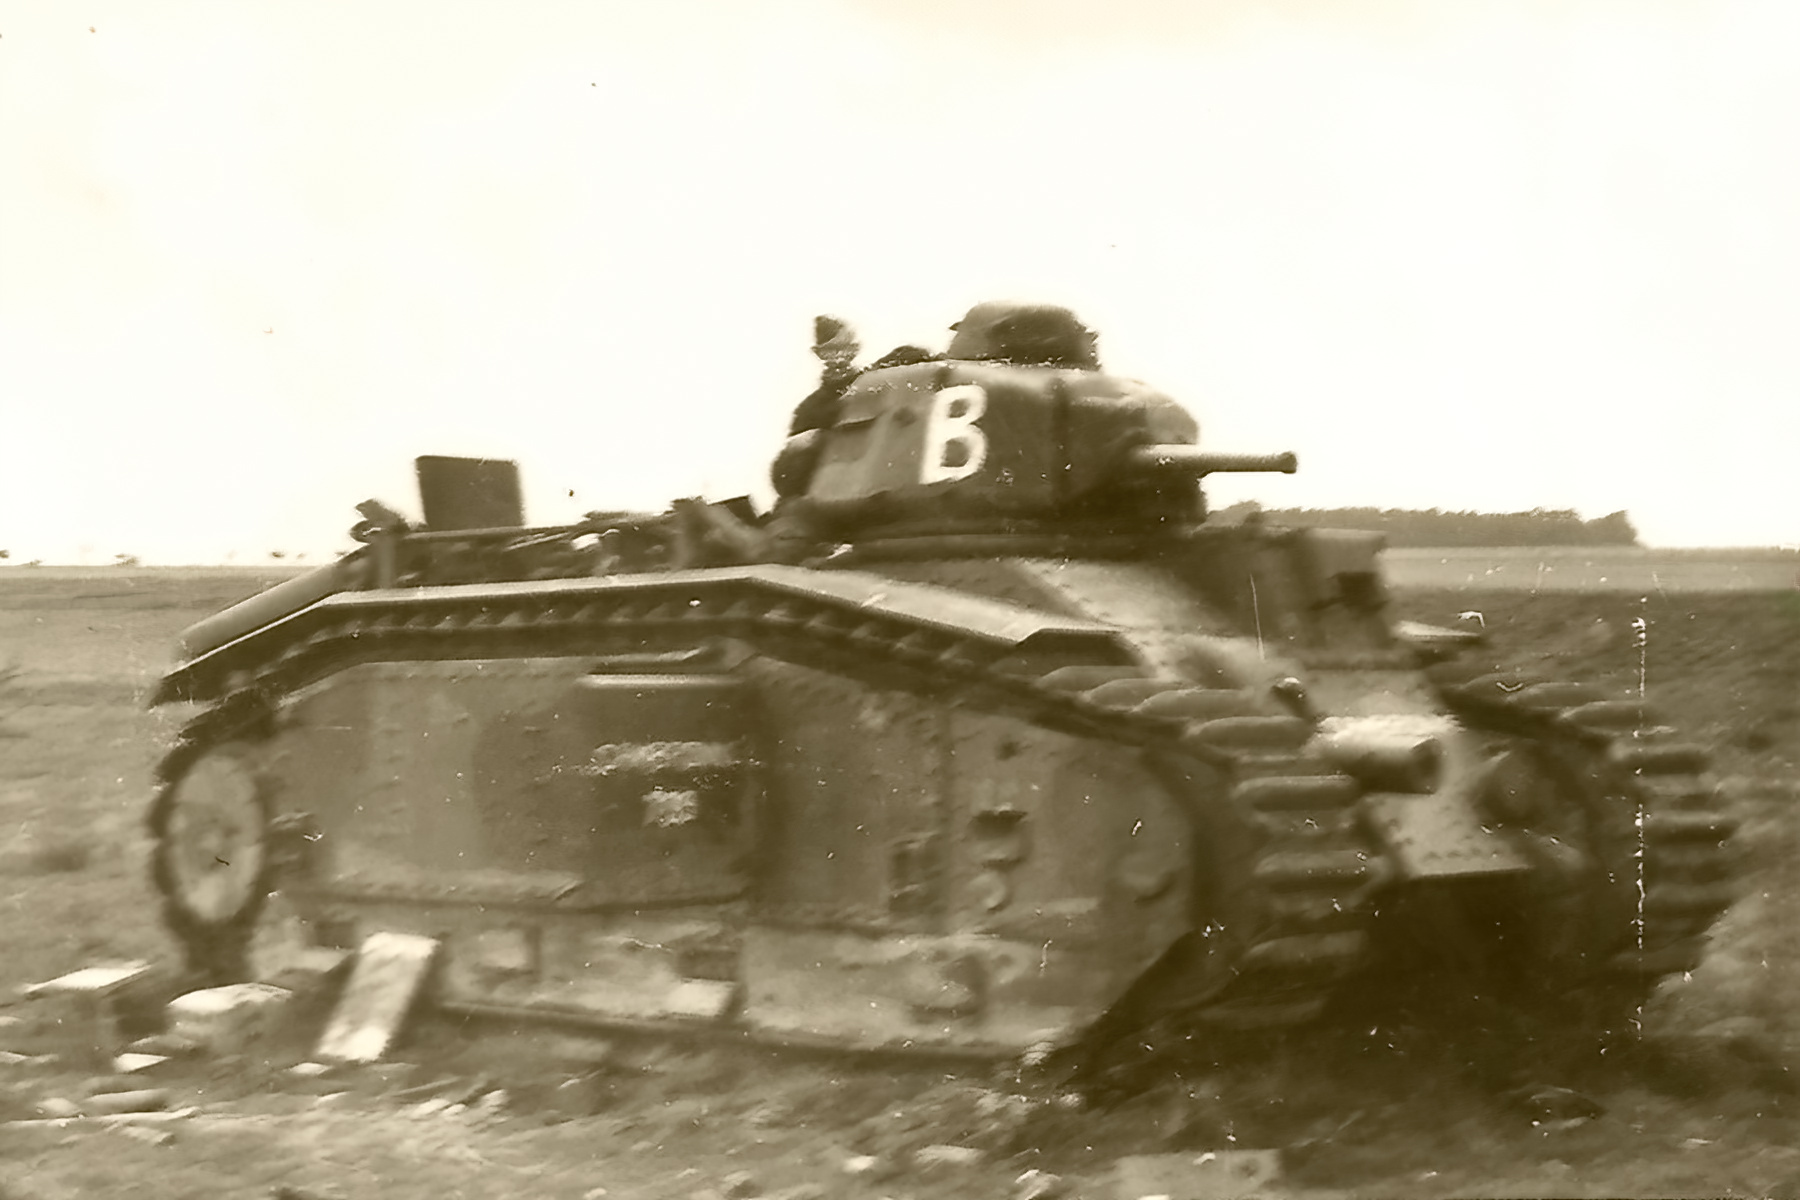 French Army Renault Char B1 White B abandoned during the battle of France 1940 ebay 01